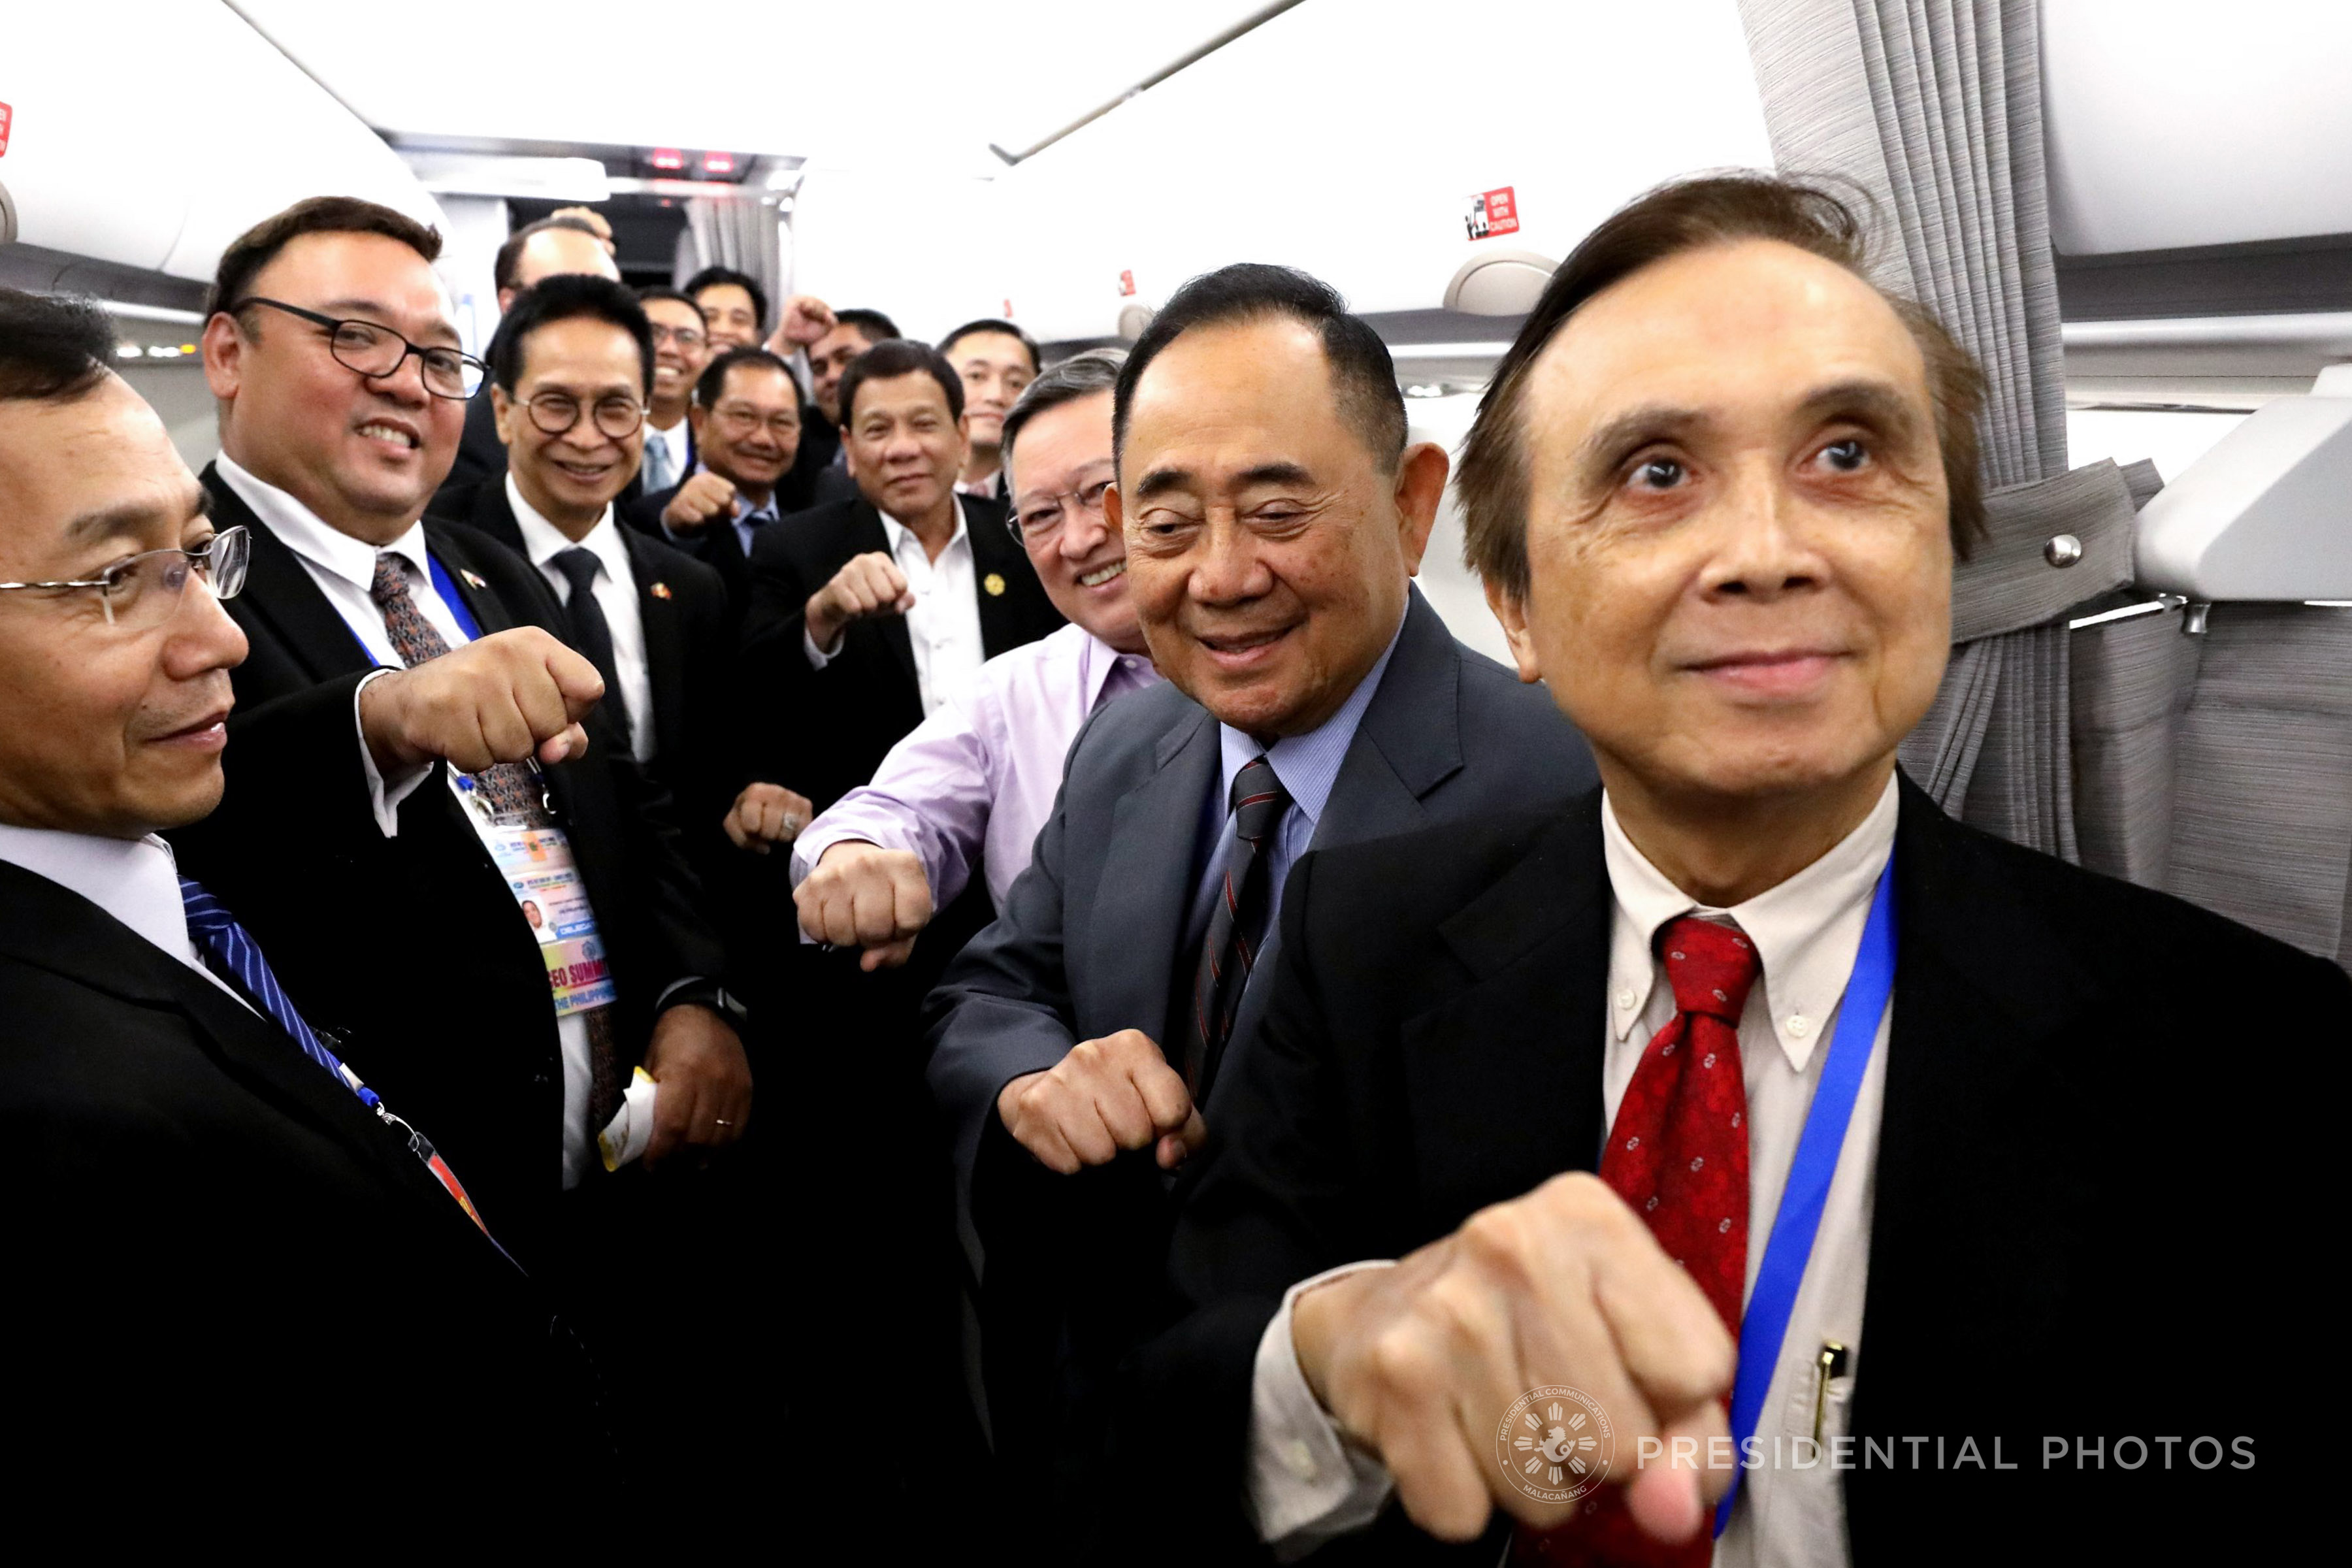 IN DUTERTE'S CIRCLE. Presidential Spokesman Harry Roque joins Cabinet officials in making the clenched fist gesture with President Rodrigo Duterte on their way to Vietnam. Malacau00f1ang photo